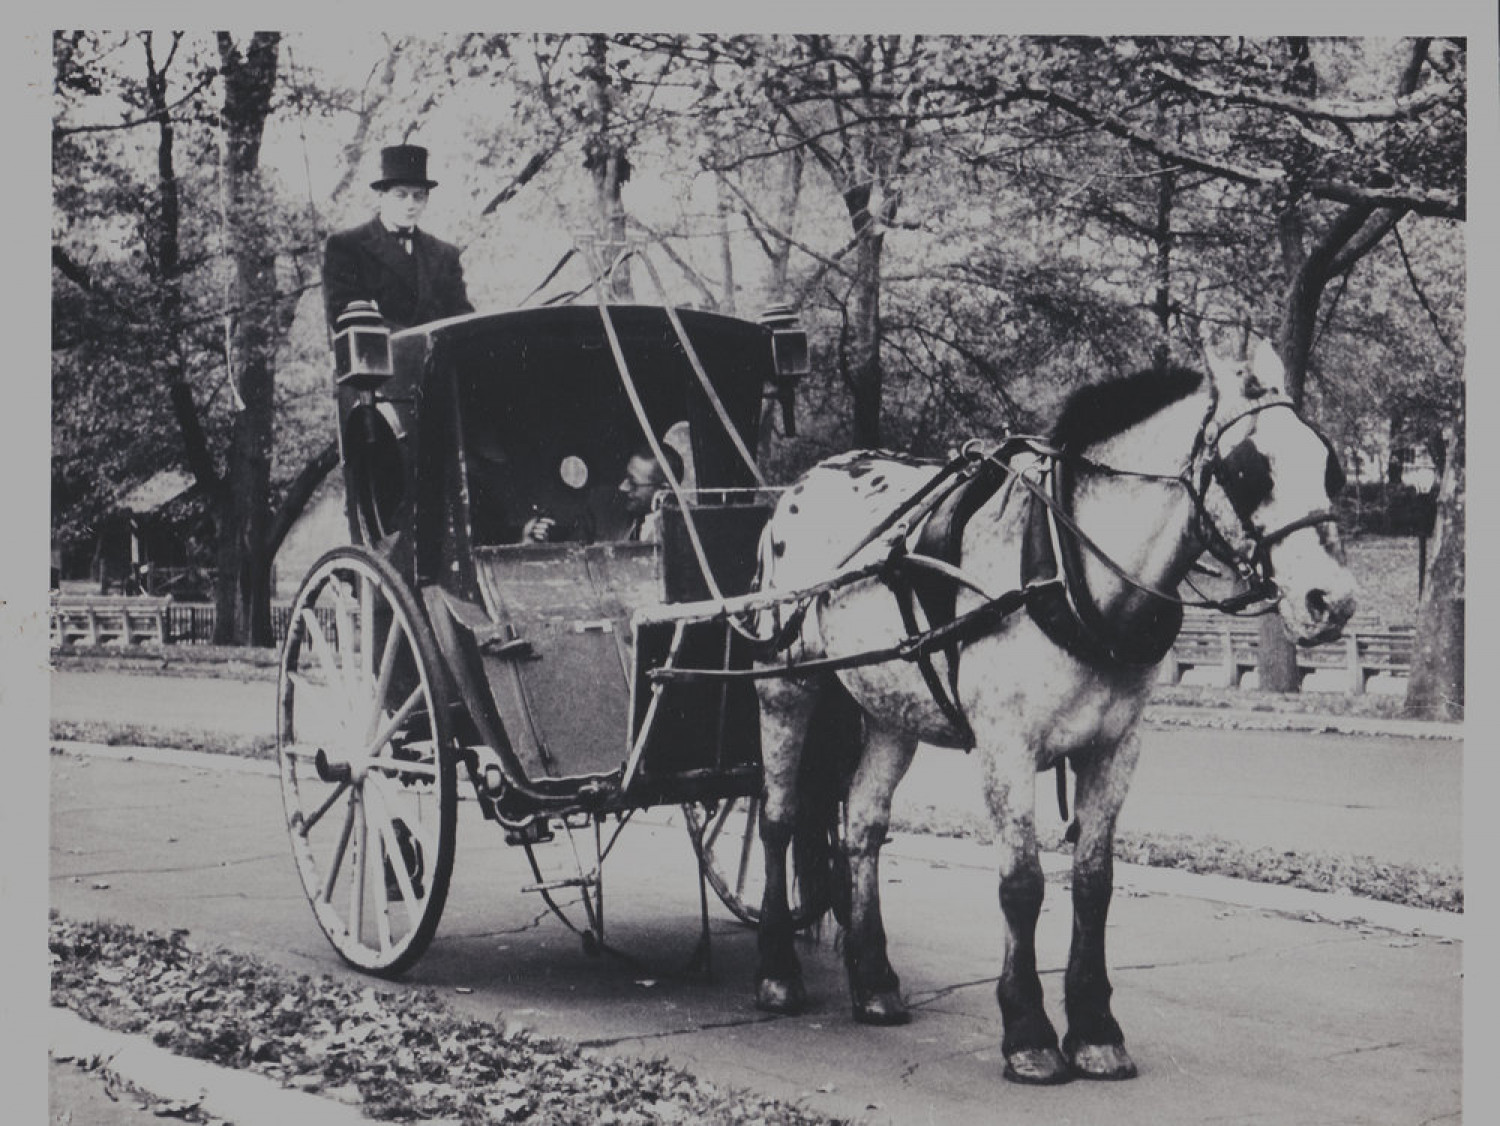 Central Park Horse and Carriage Rides Infographic